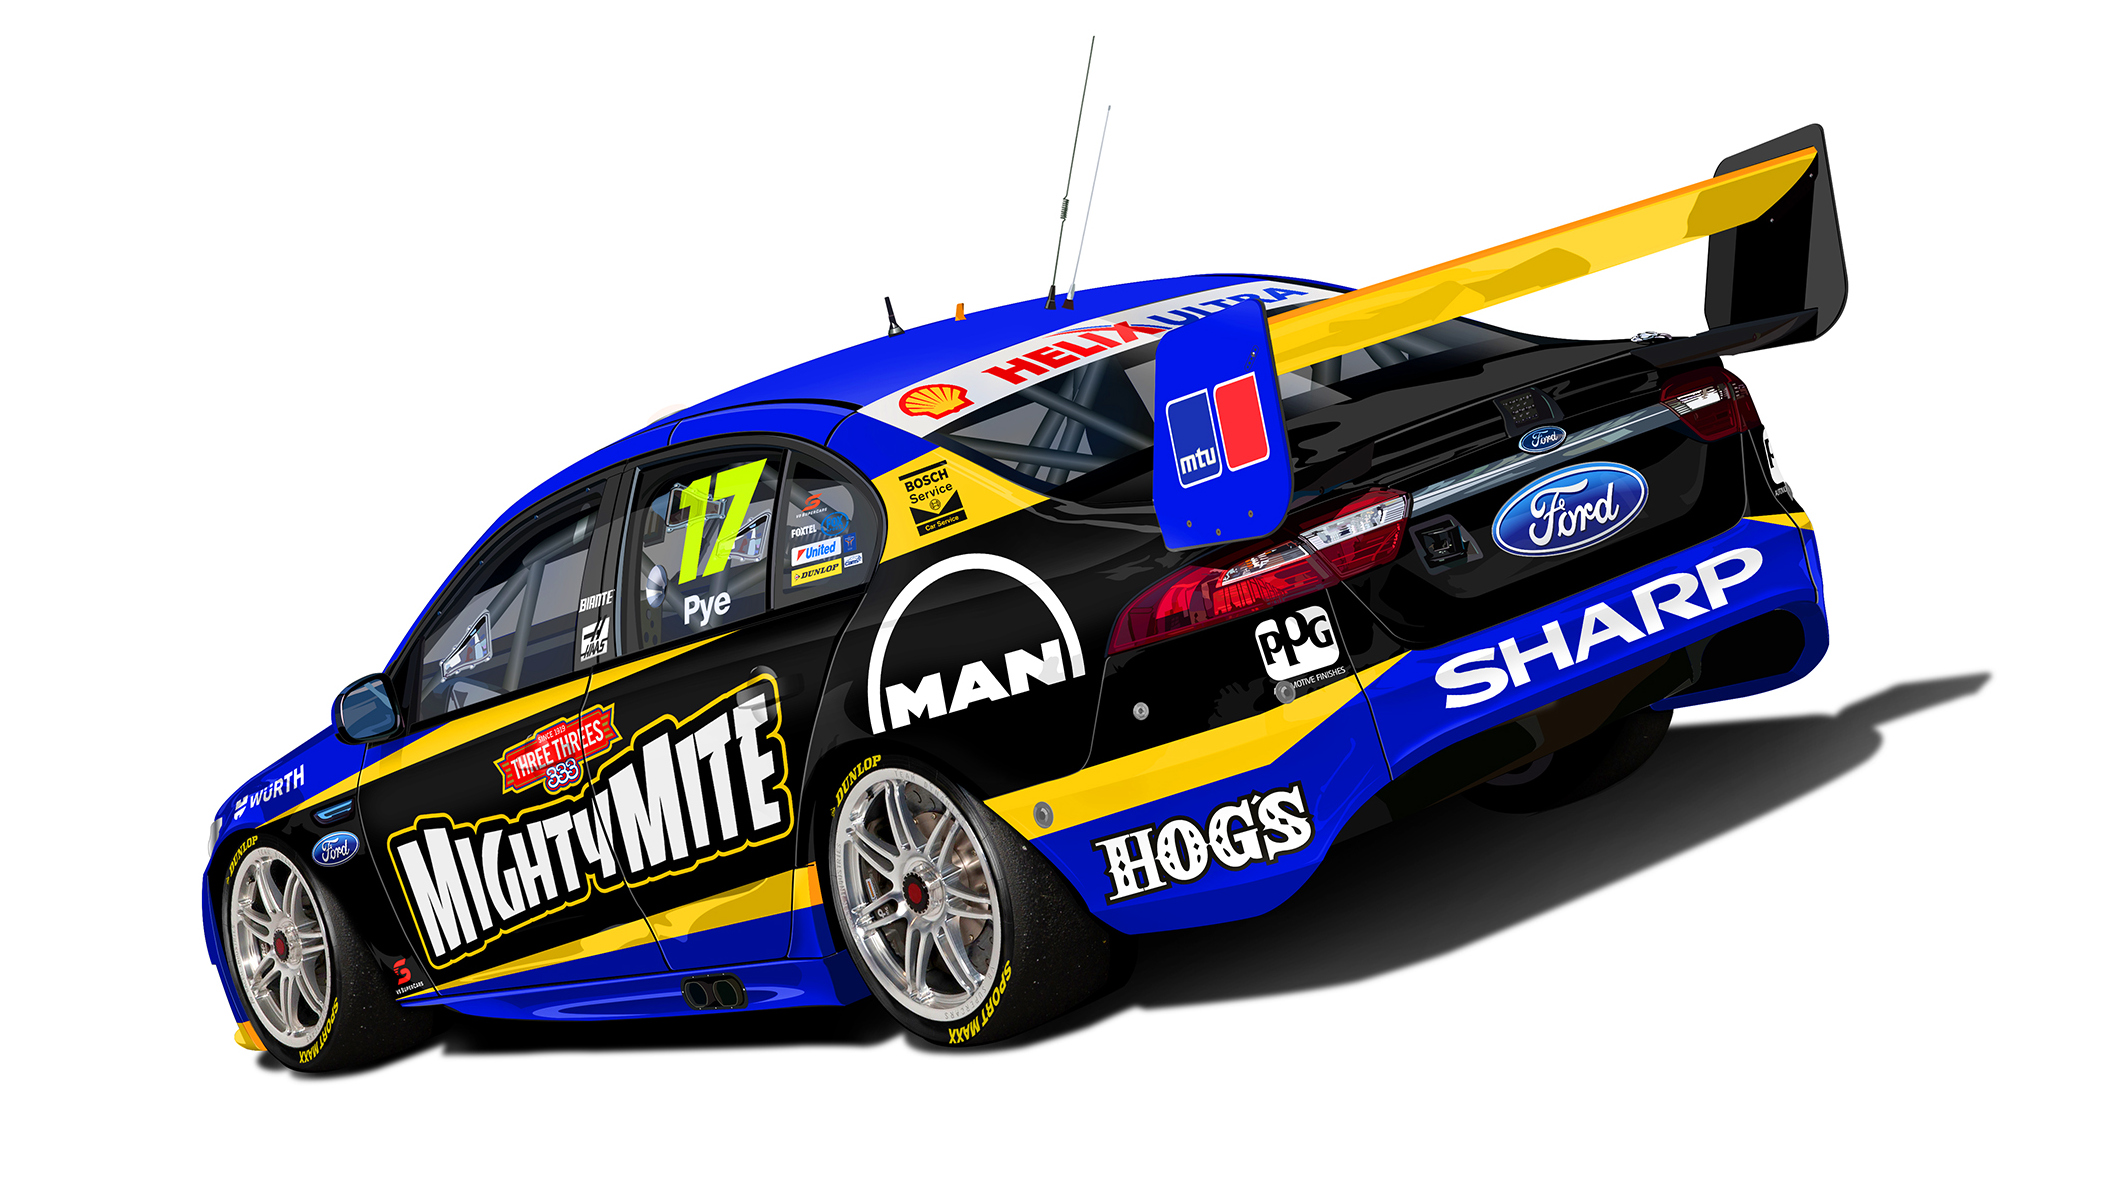 DJR Might Mite livery rear